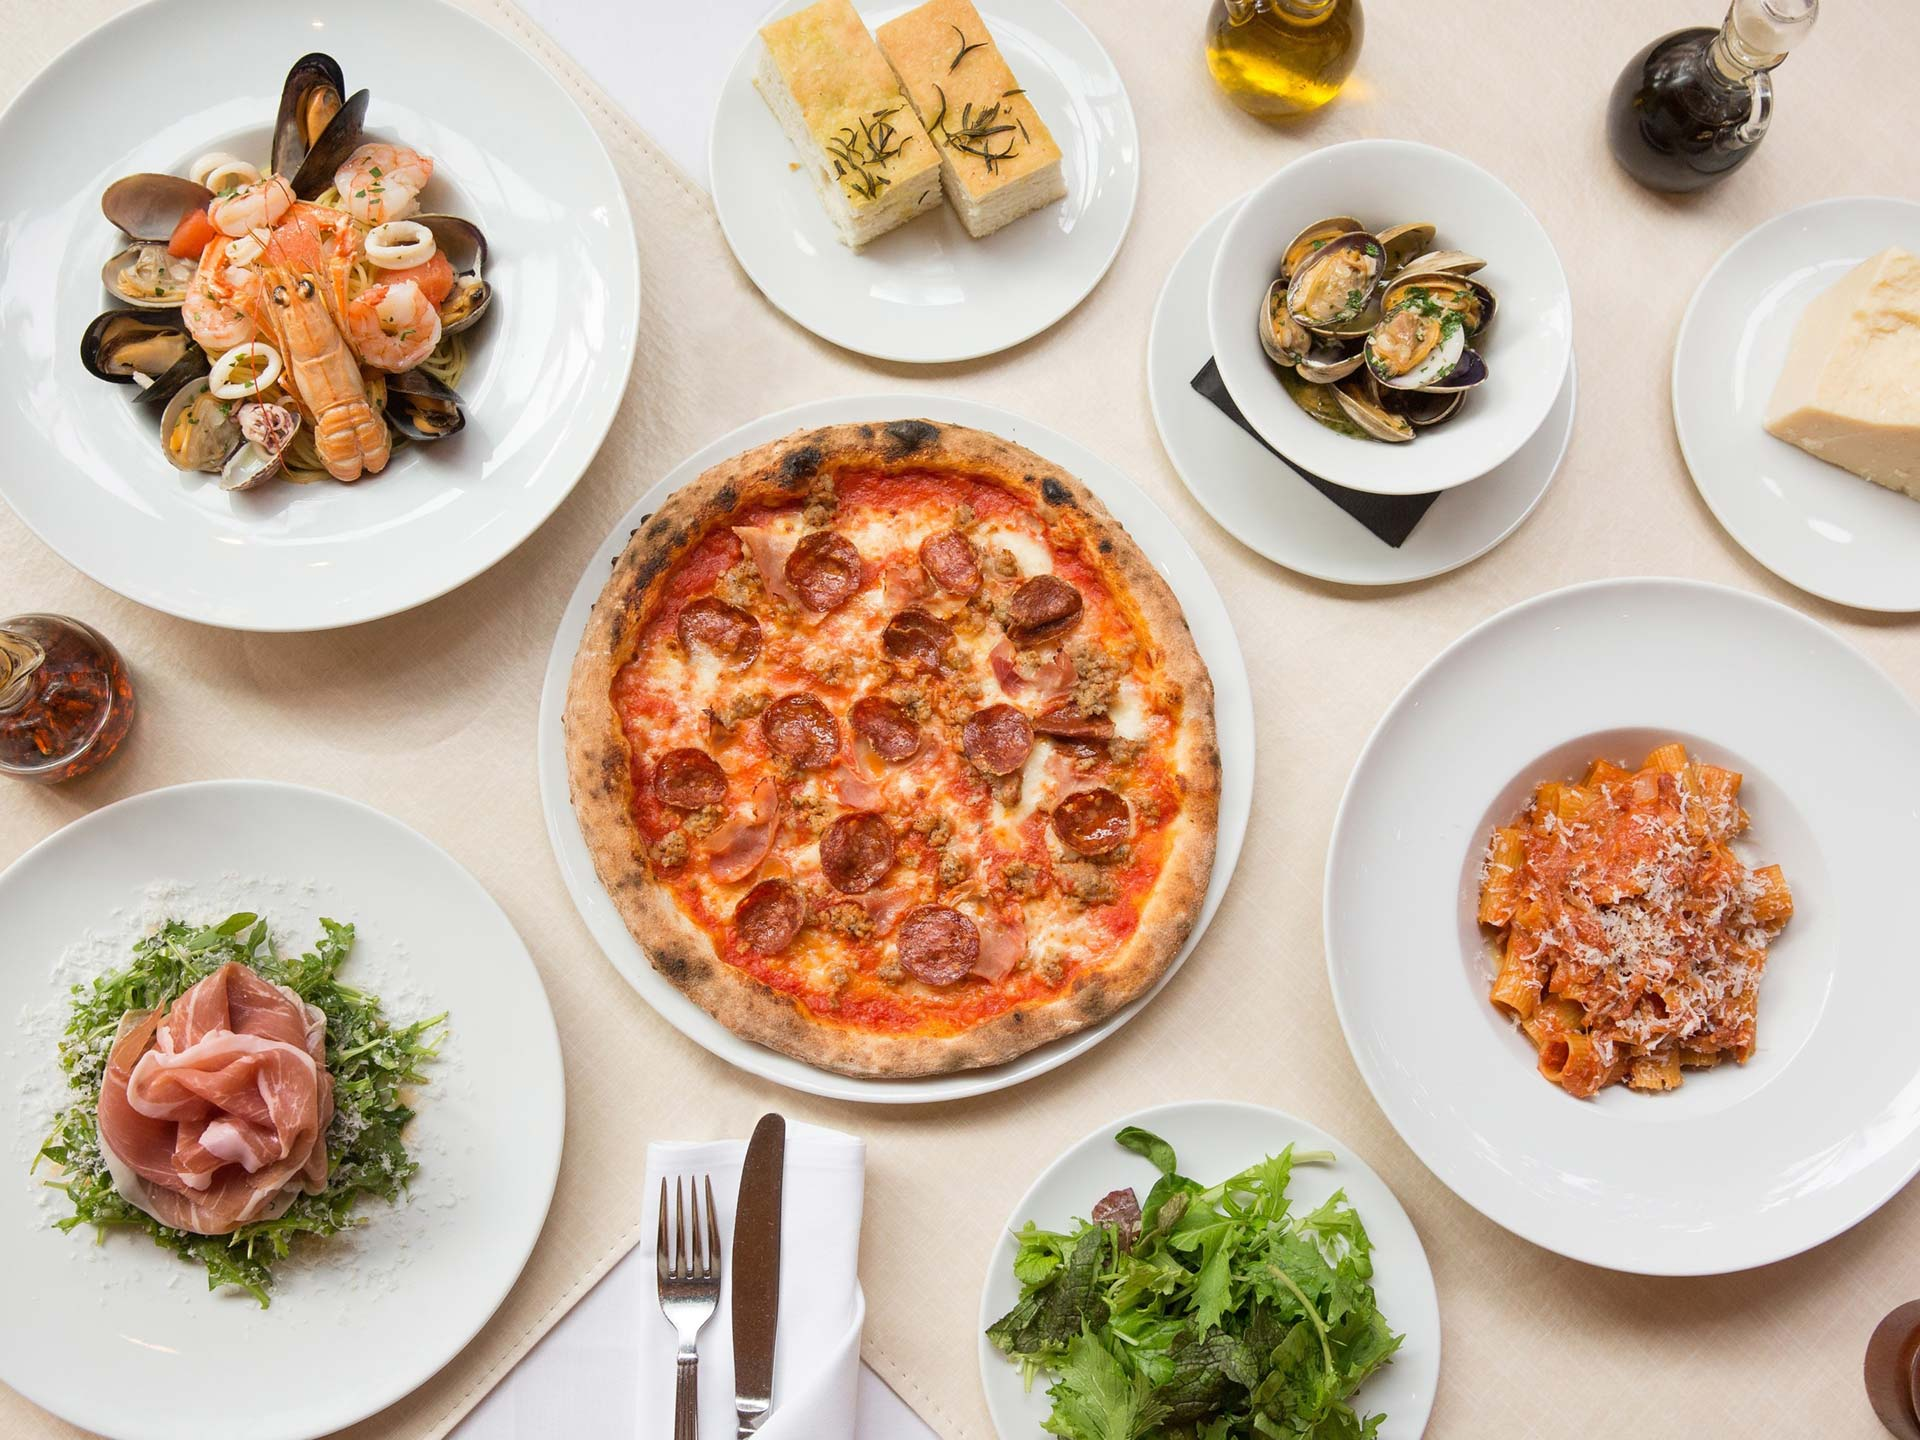 a table set with a number of Italian dishes such as pizza, pasta, salads, and fresh seafood